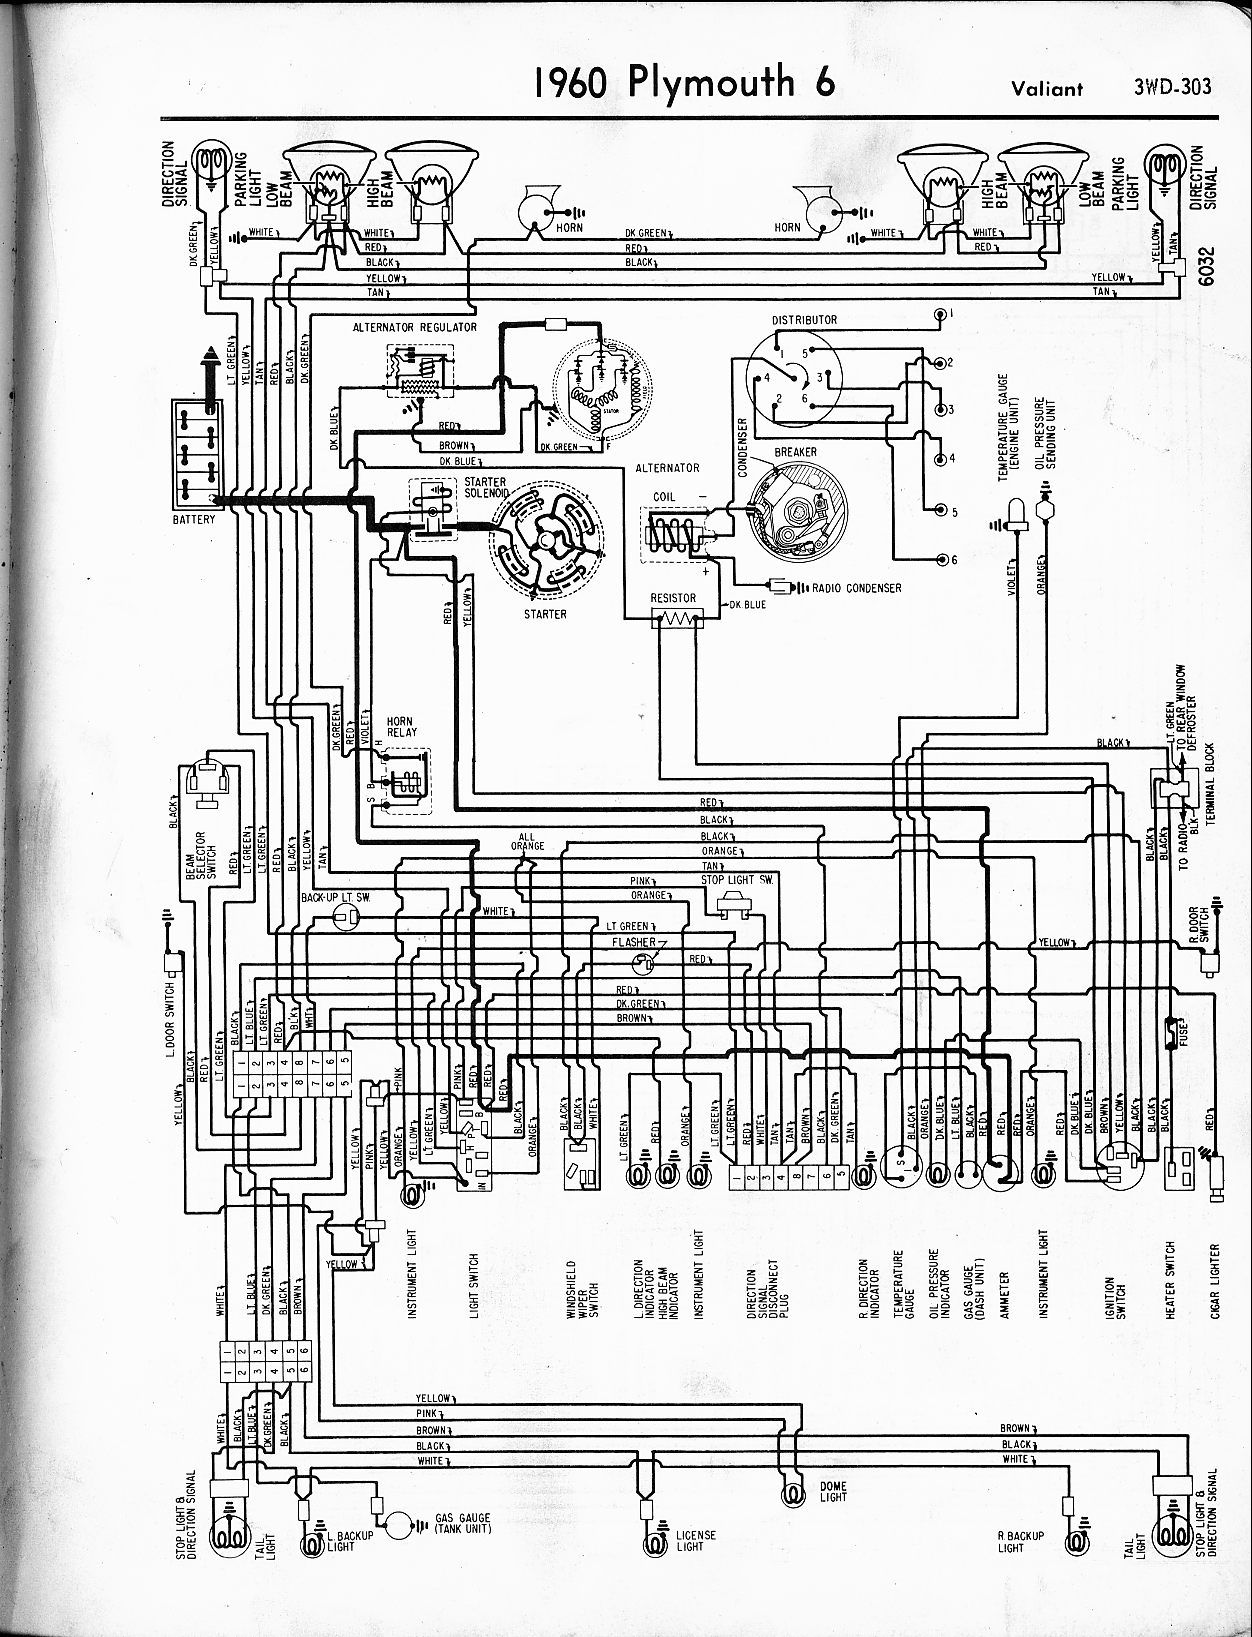 56 Plymouth Wiring Diagram Everything About 71 Chevrolet C10 396 Wire 1956 1965 The Old Car Manual Project Rh Oldcarmanualproject Com 1972 Diagrams 1939 Positive Ground